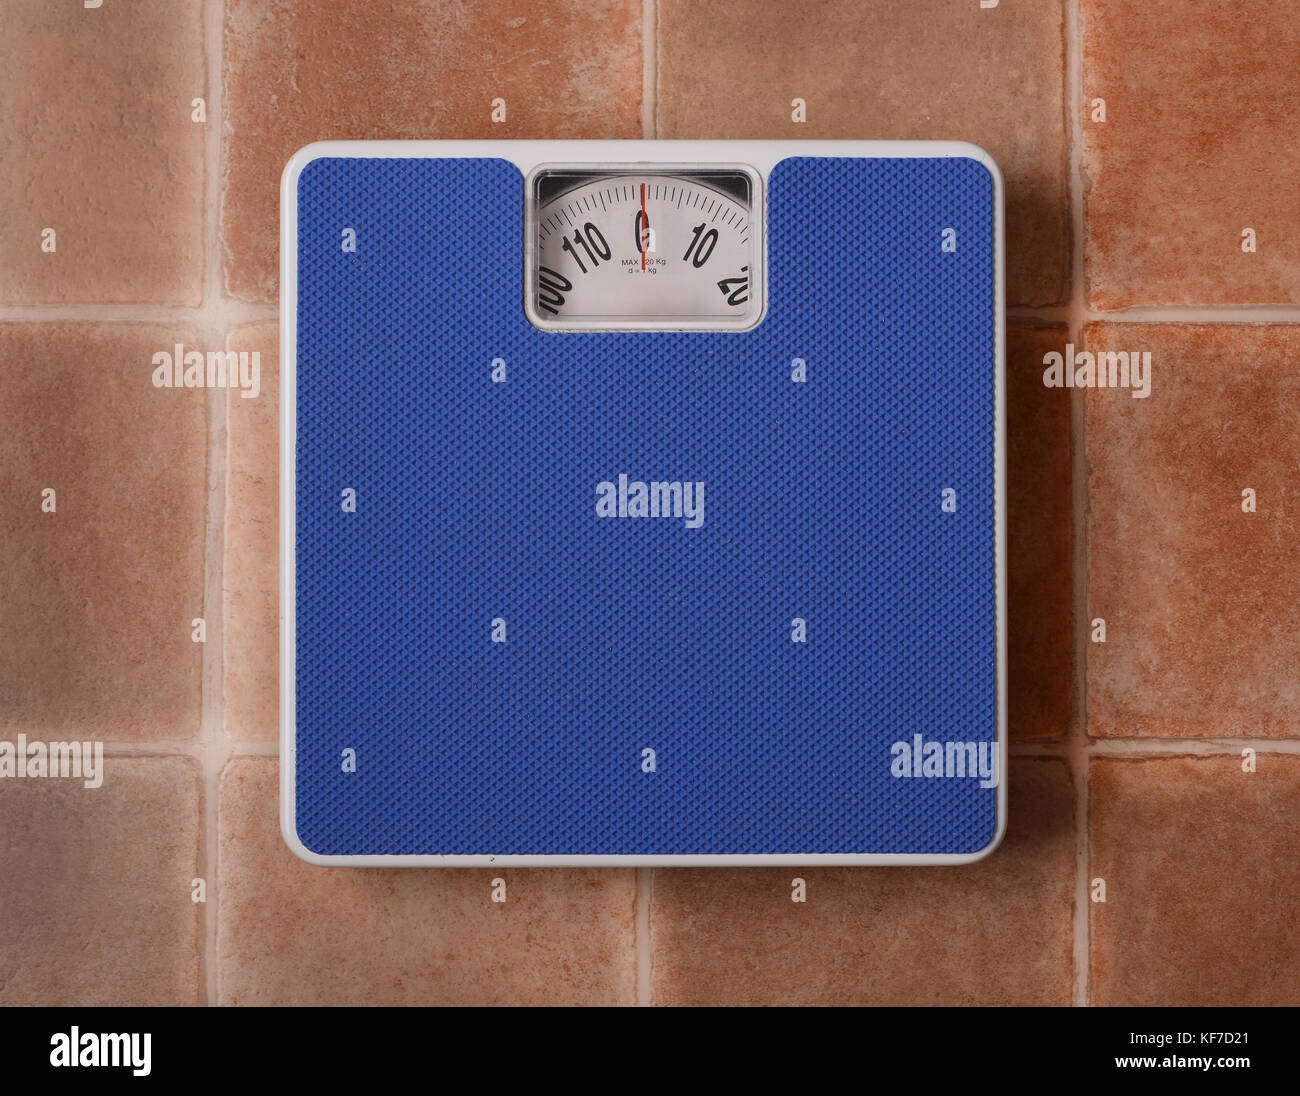 Bathroom scale isolated on terracotta floor background - closeup - Stock Image